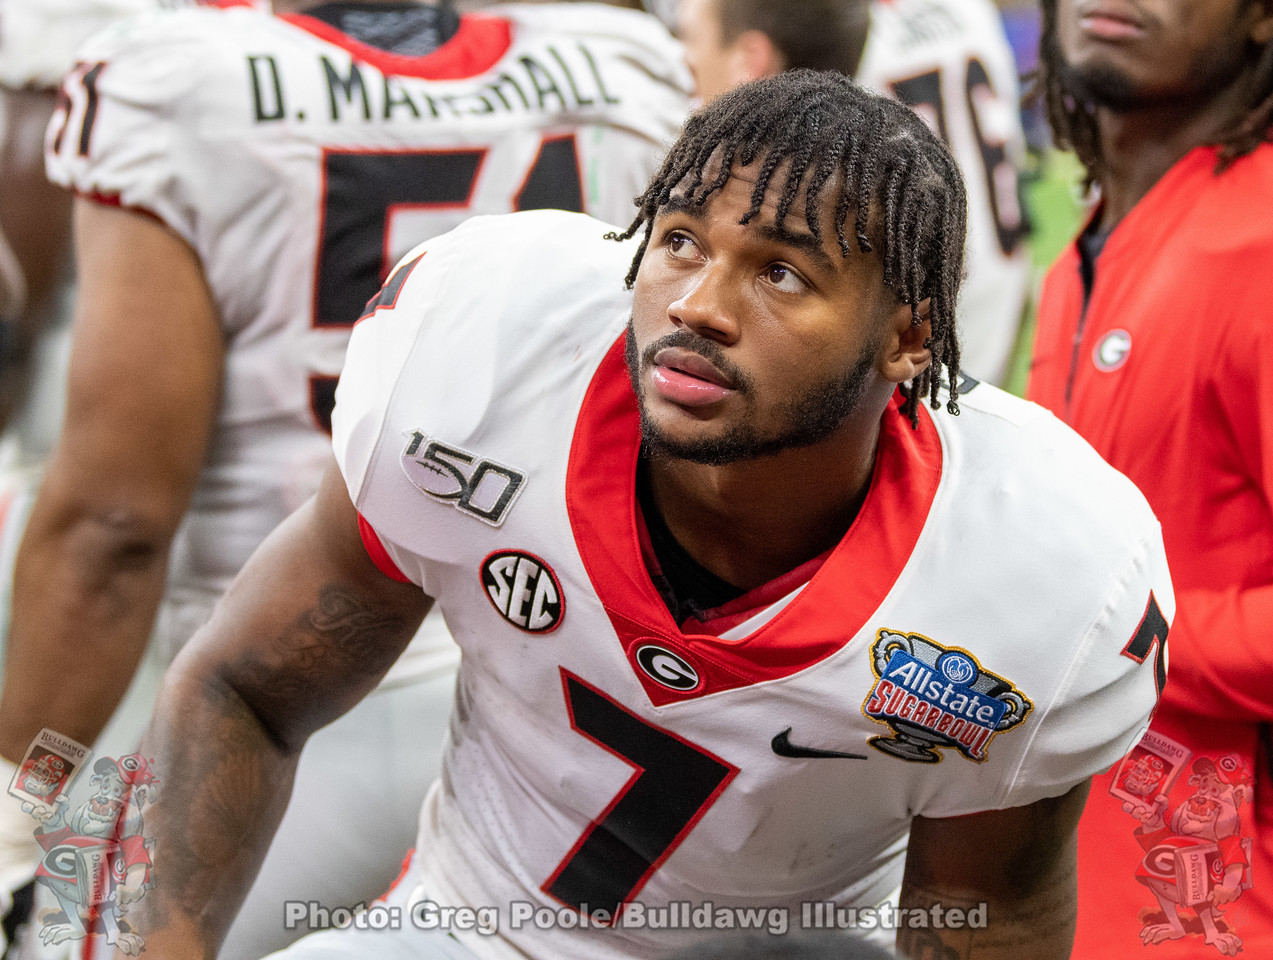 UGA running back D'Andre Swift (7) during the third quarter of the 2020 Sugar Bowl versus Baylor on Wednesday, January 1st in New Orleans, LA at the Mercedes-Benz Superdome.